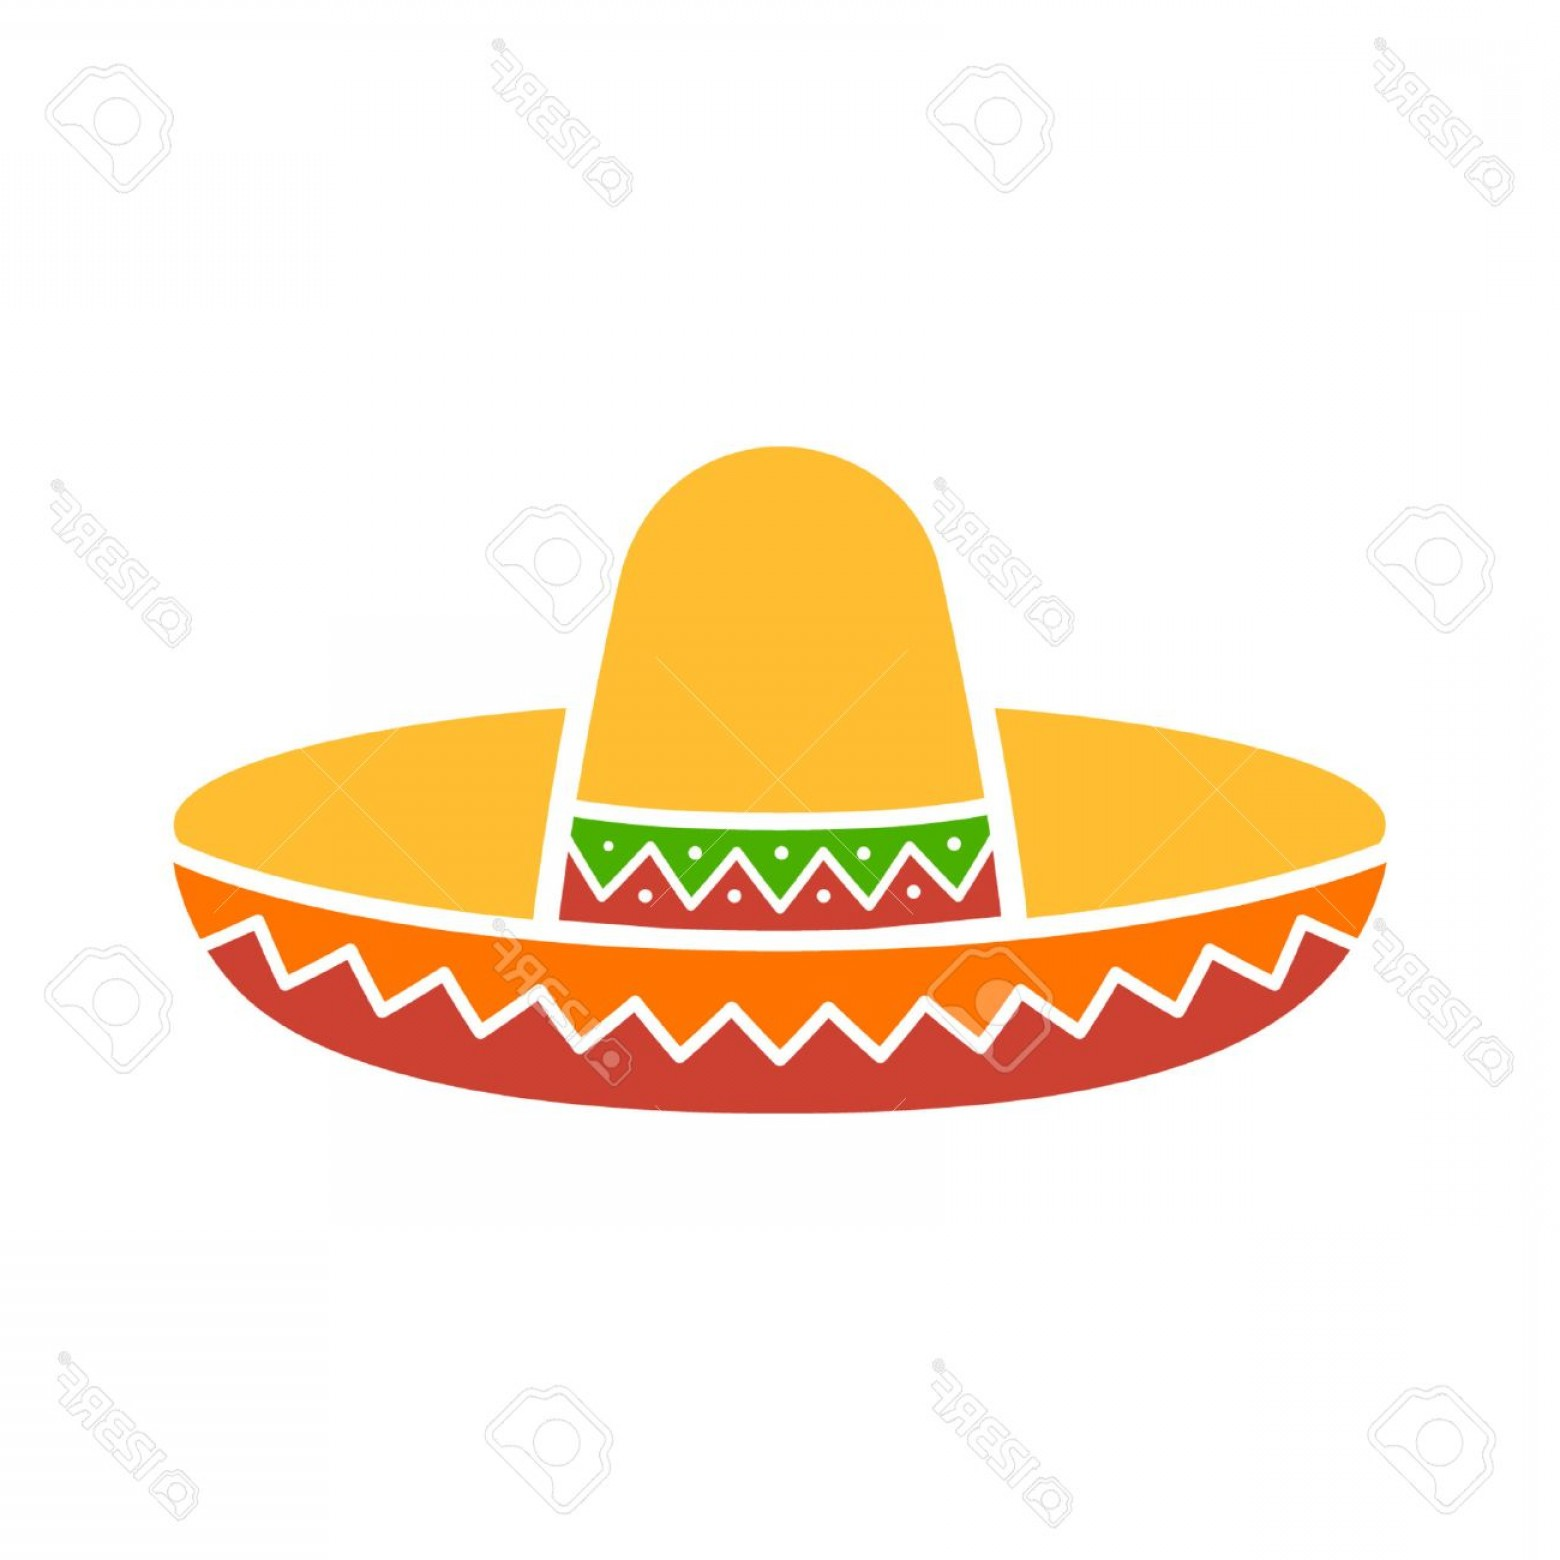 Sombrero Hat Vector: Photostock Vector Sombrero Mexican Hat Colorful Flat Icon For Apps And Websites